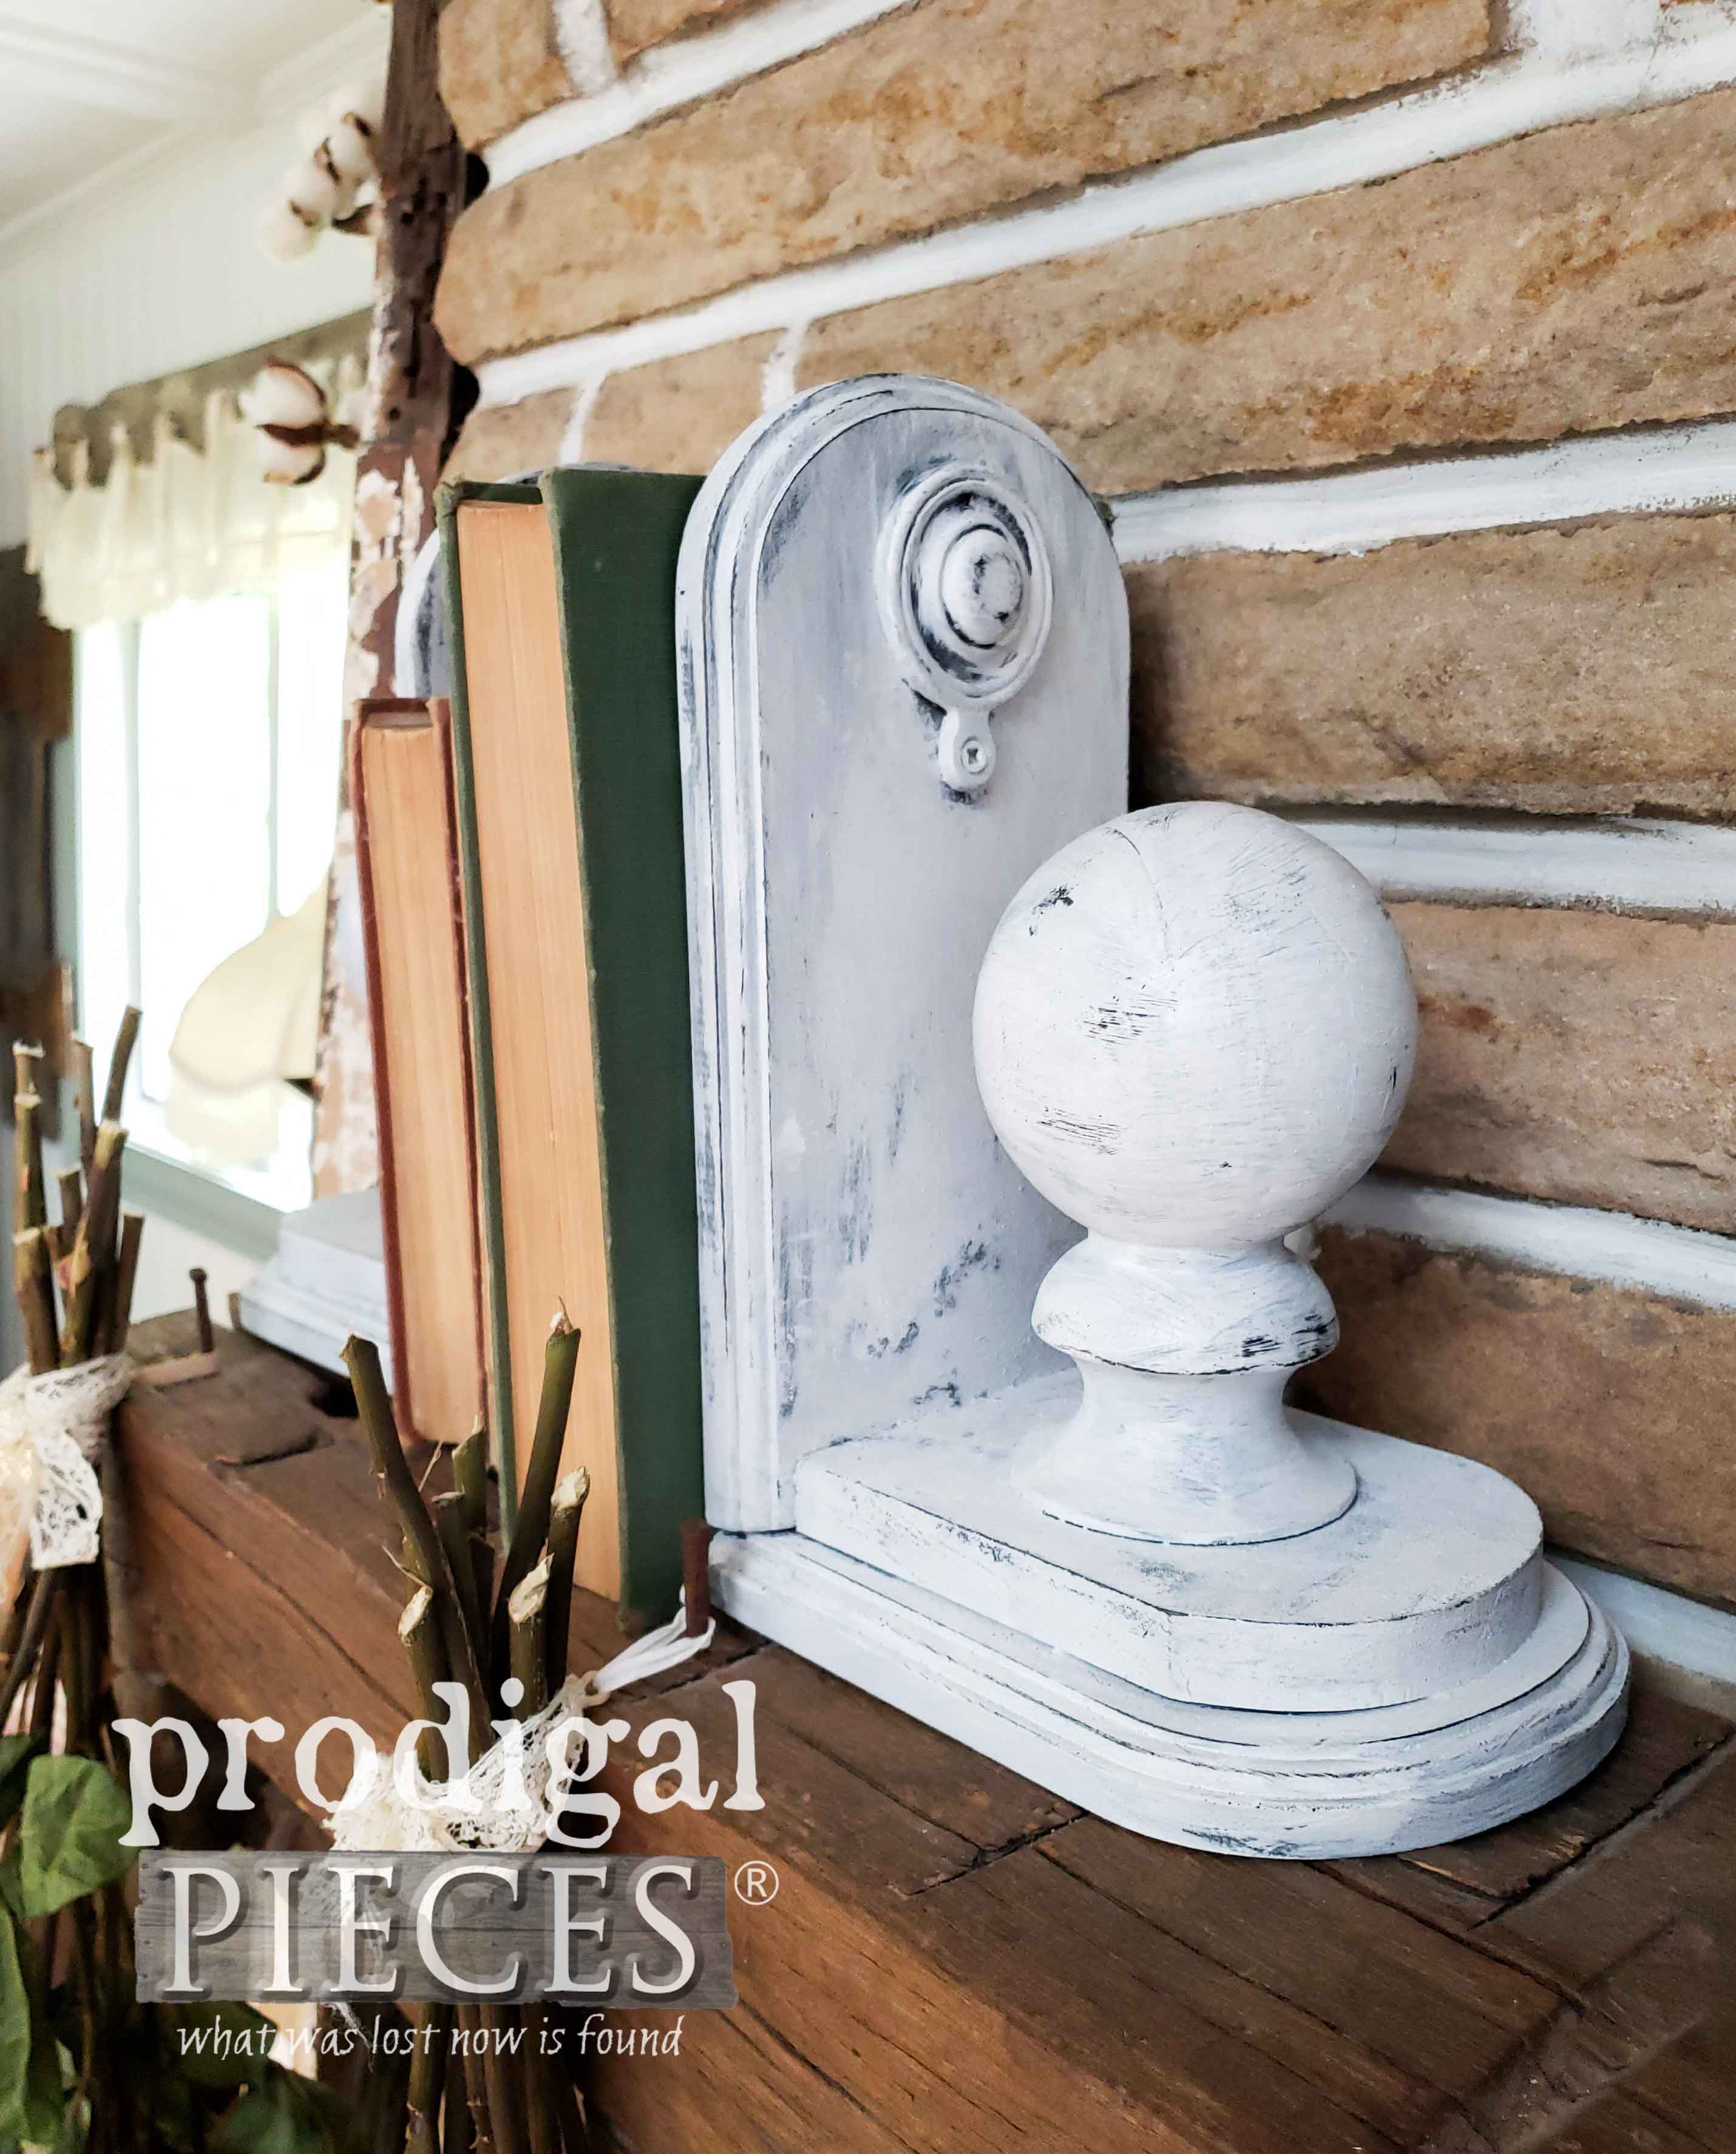 Shabby Chic Farmhouse Style Bookends Created by Larissa of Prodigal Pieces | prodigalpieces.com #prodigalpieces #diy #home #homedecor #farmhouse